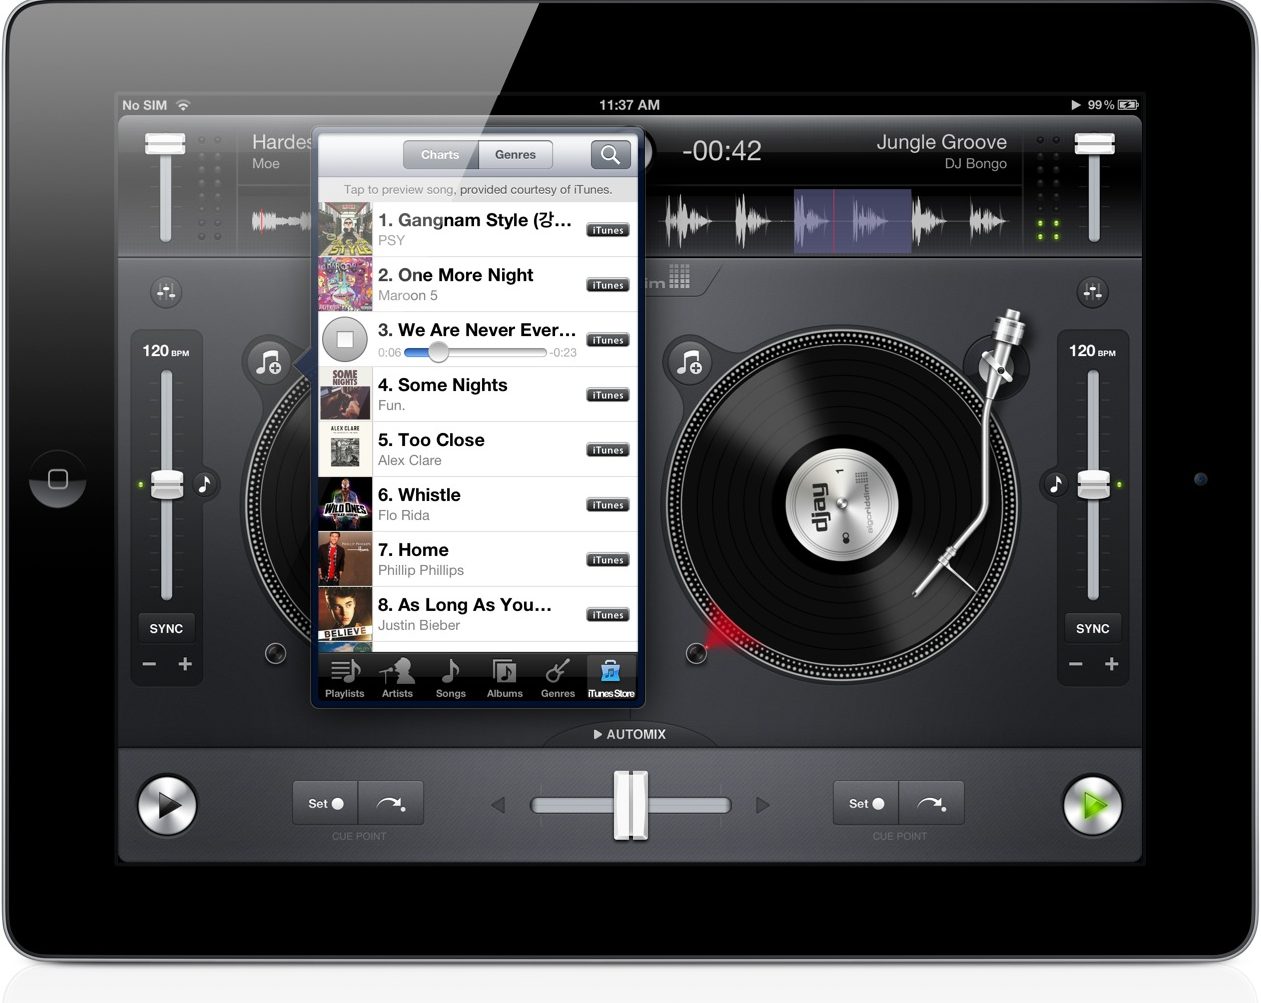 New Versions Of Djay Arrive, Offering Support for iOS 6 And iPhone 5